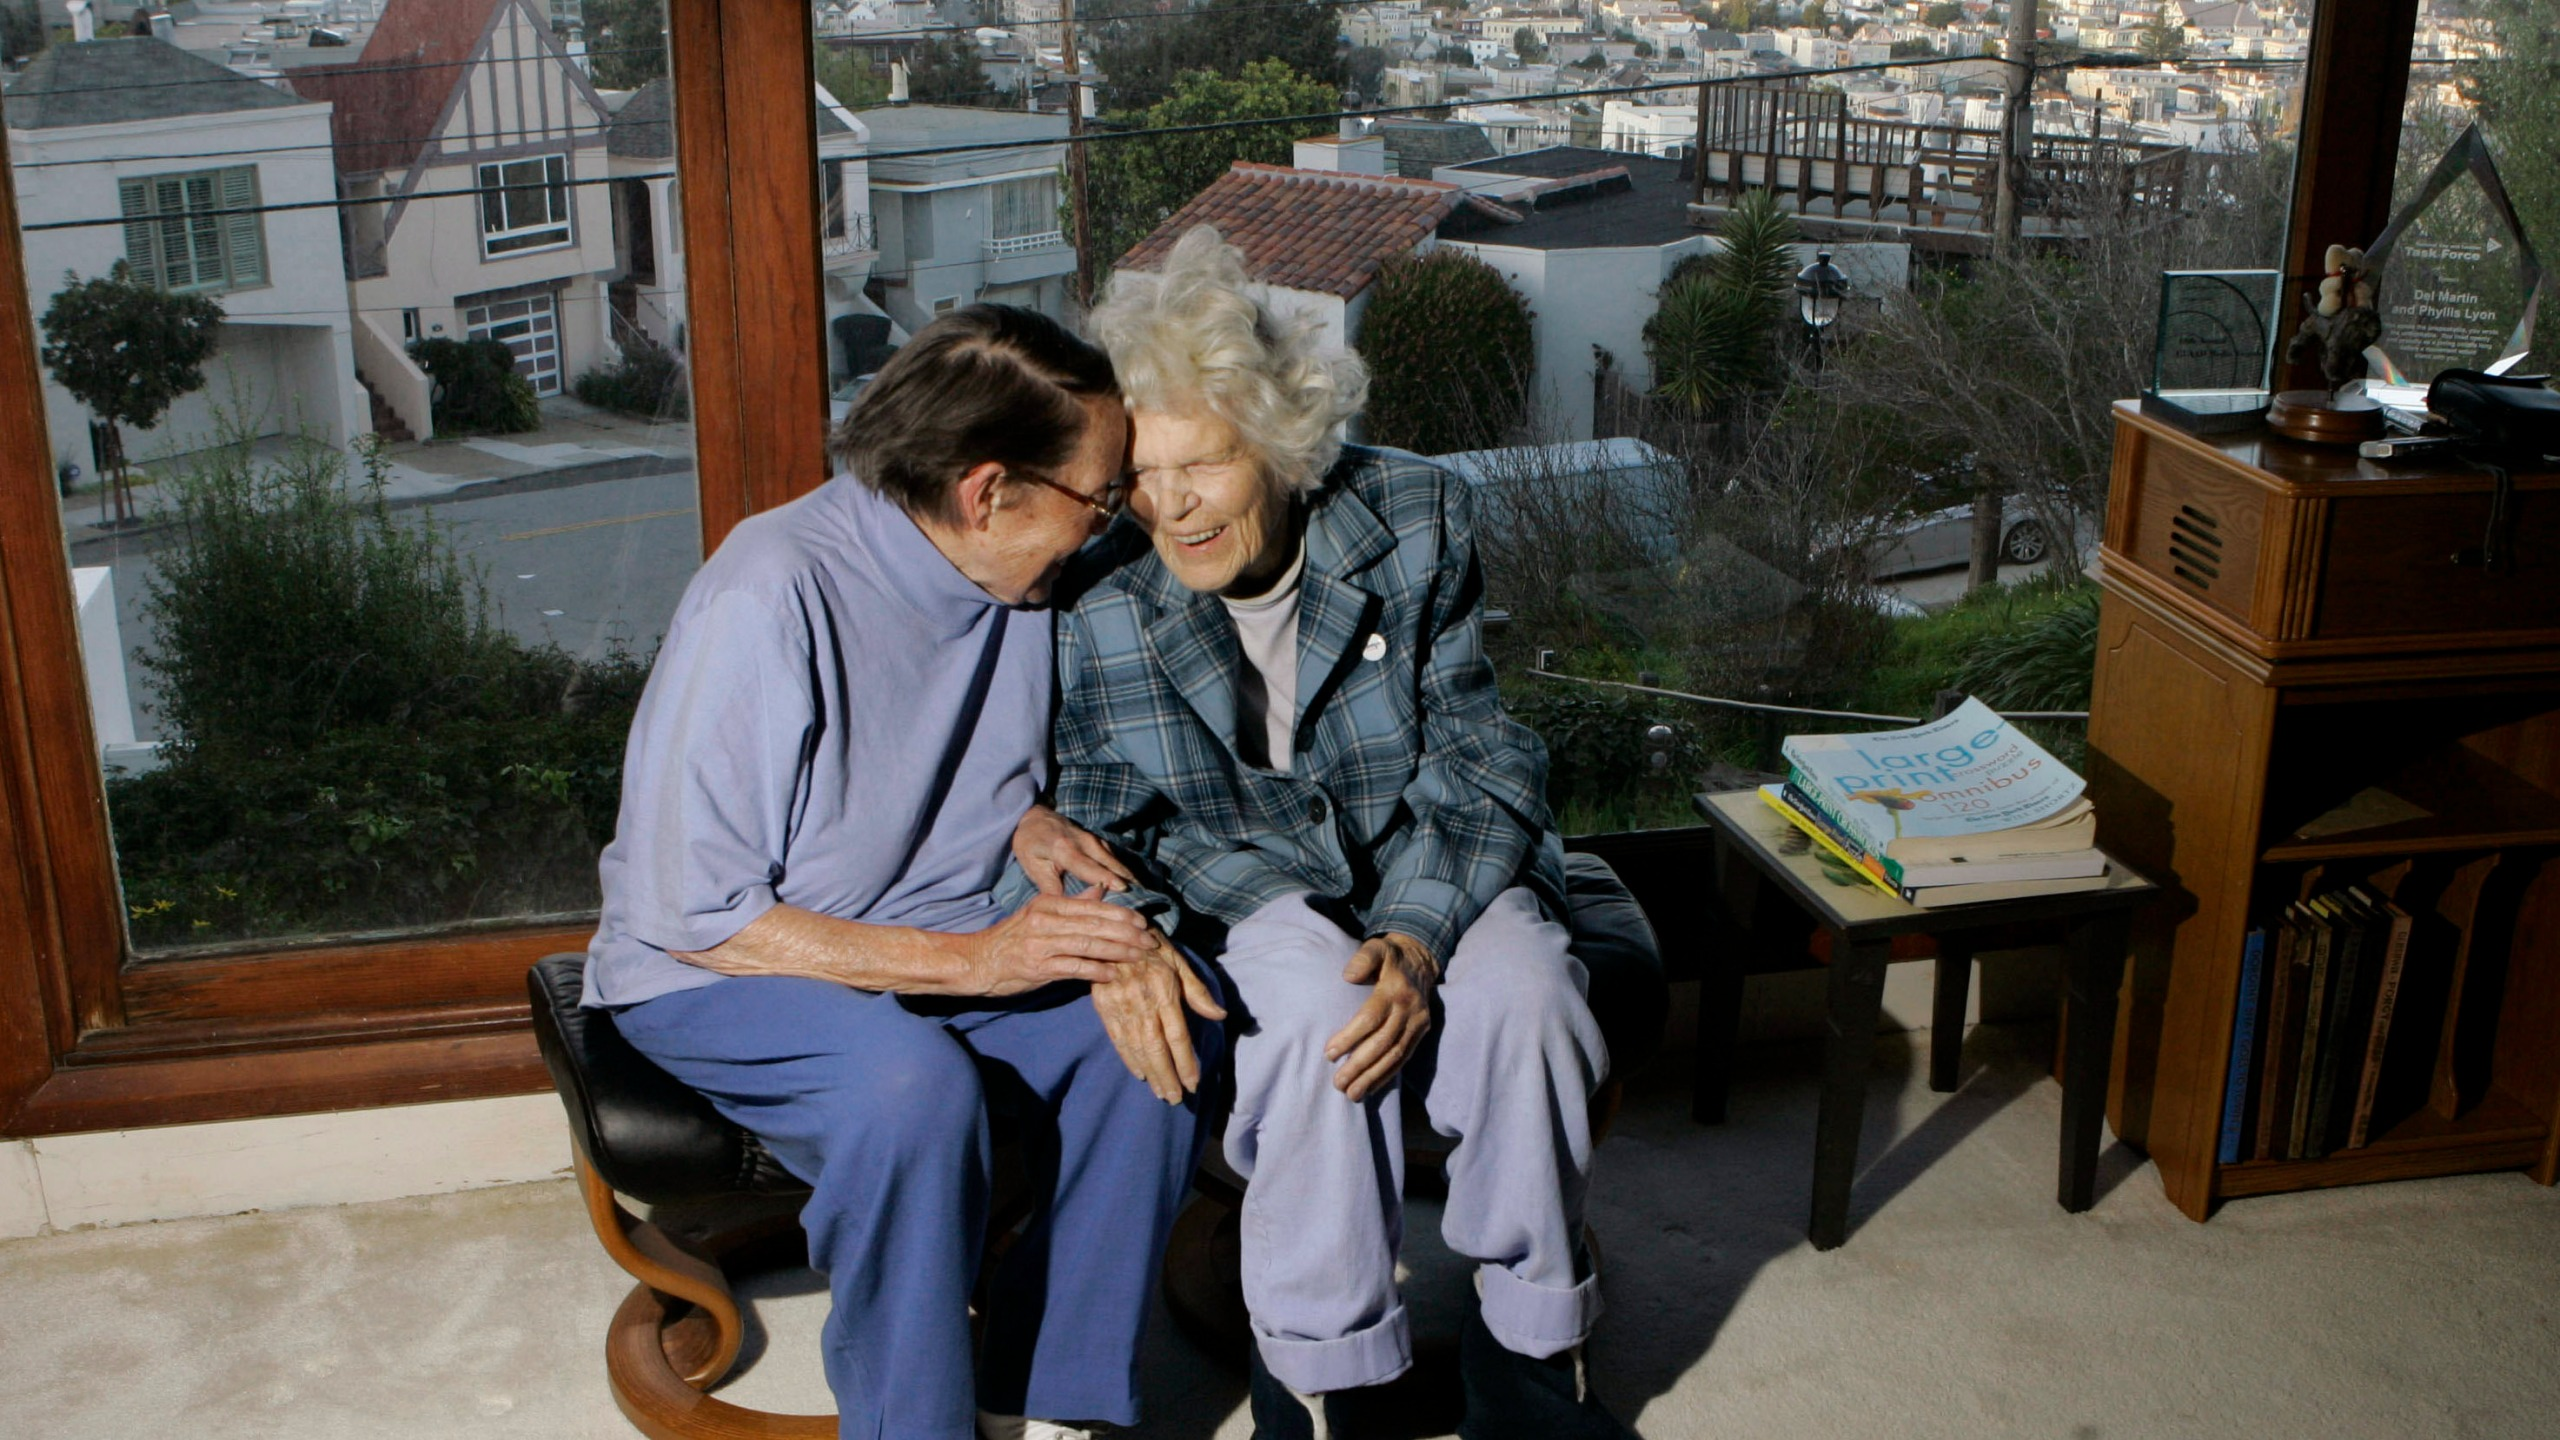 Phyllis Lyon, left, and Del Martin are photographed at home in San Francisco on March 3, 2008. (Marcio Jose Sanchez / Associated Press)